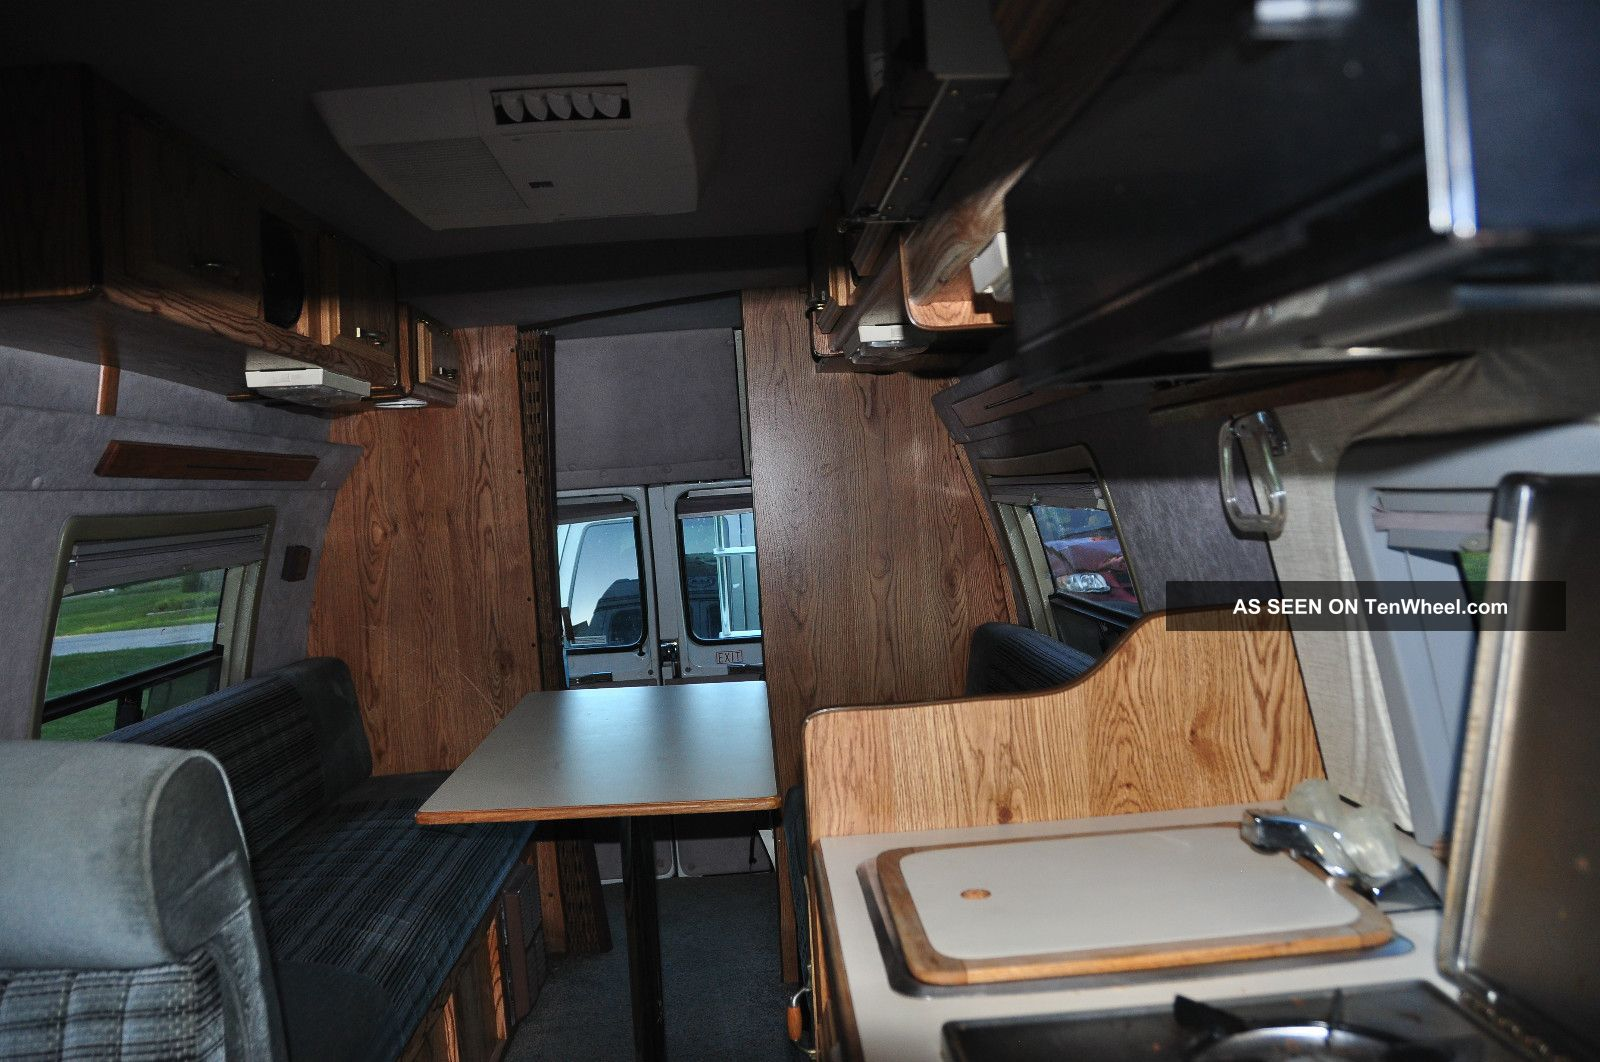 1990 Dodge B250 Extended Class B Camper Van Other photo 3